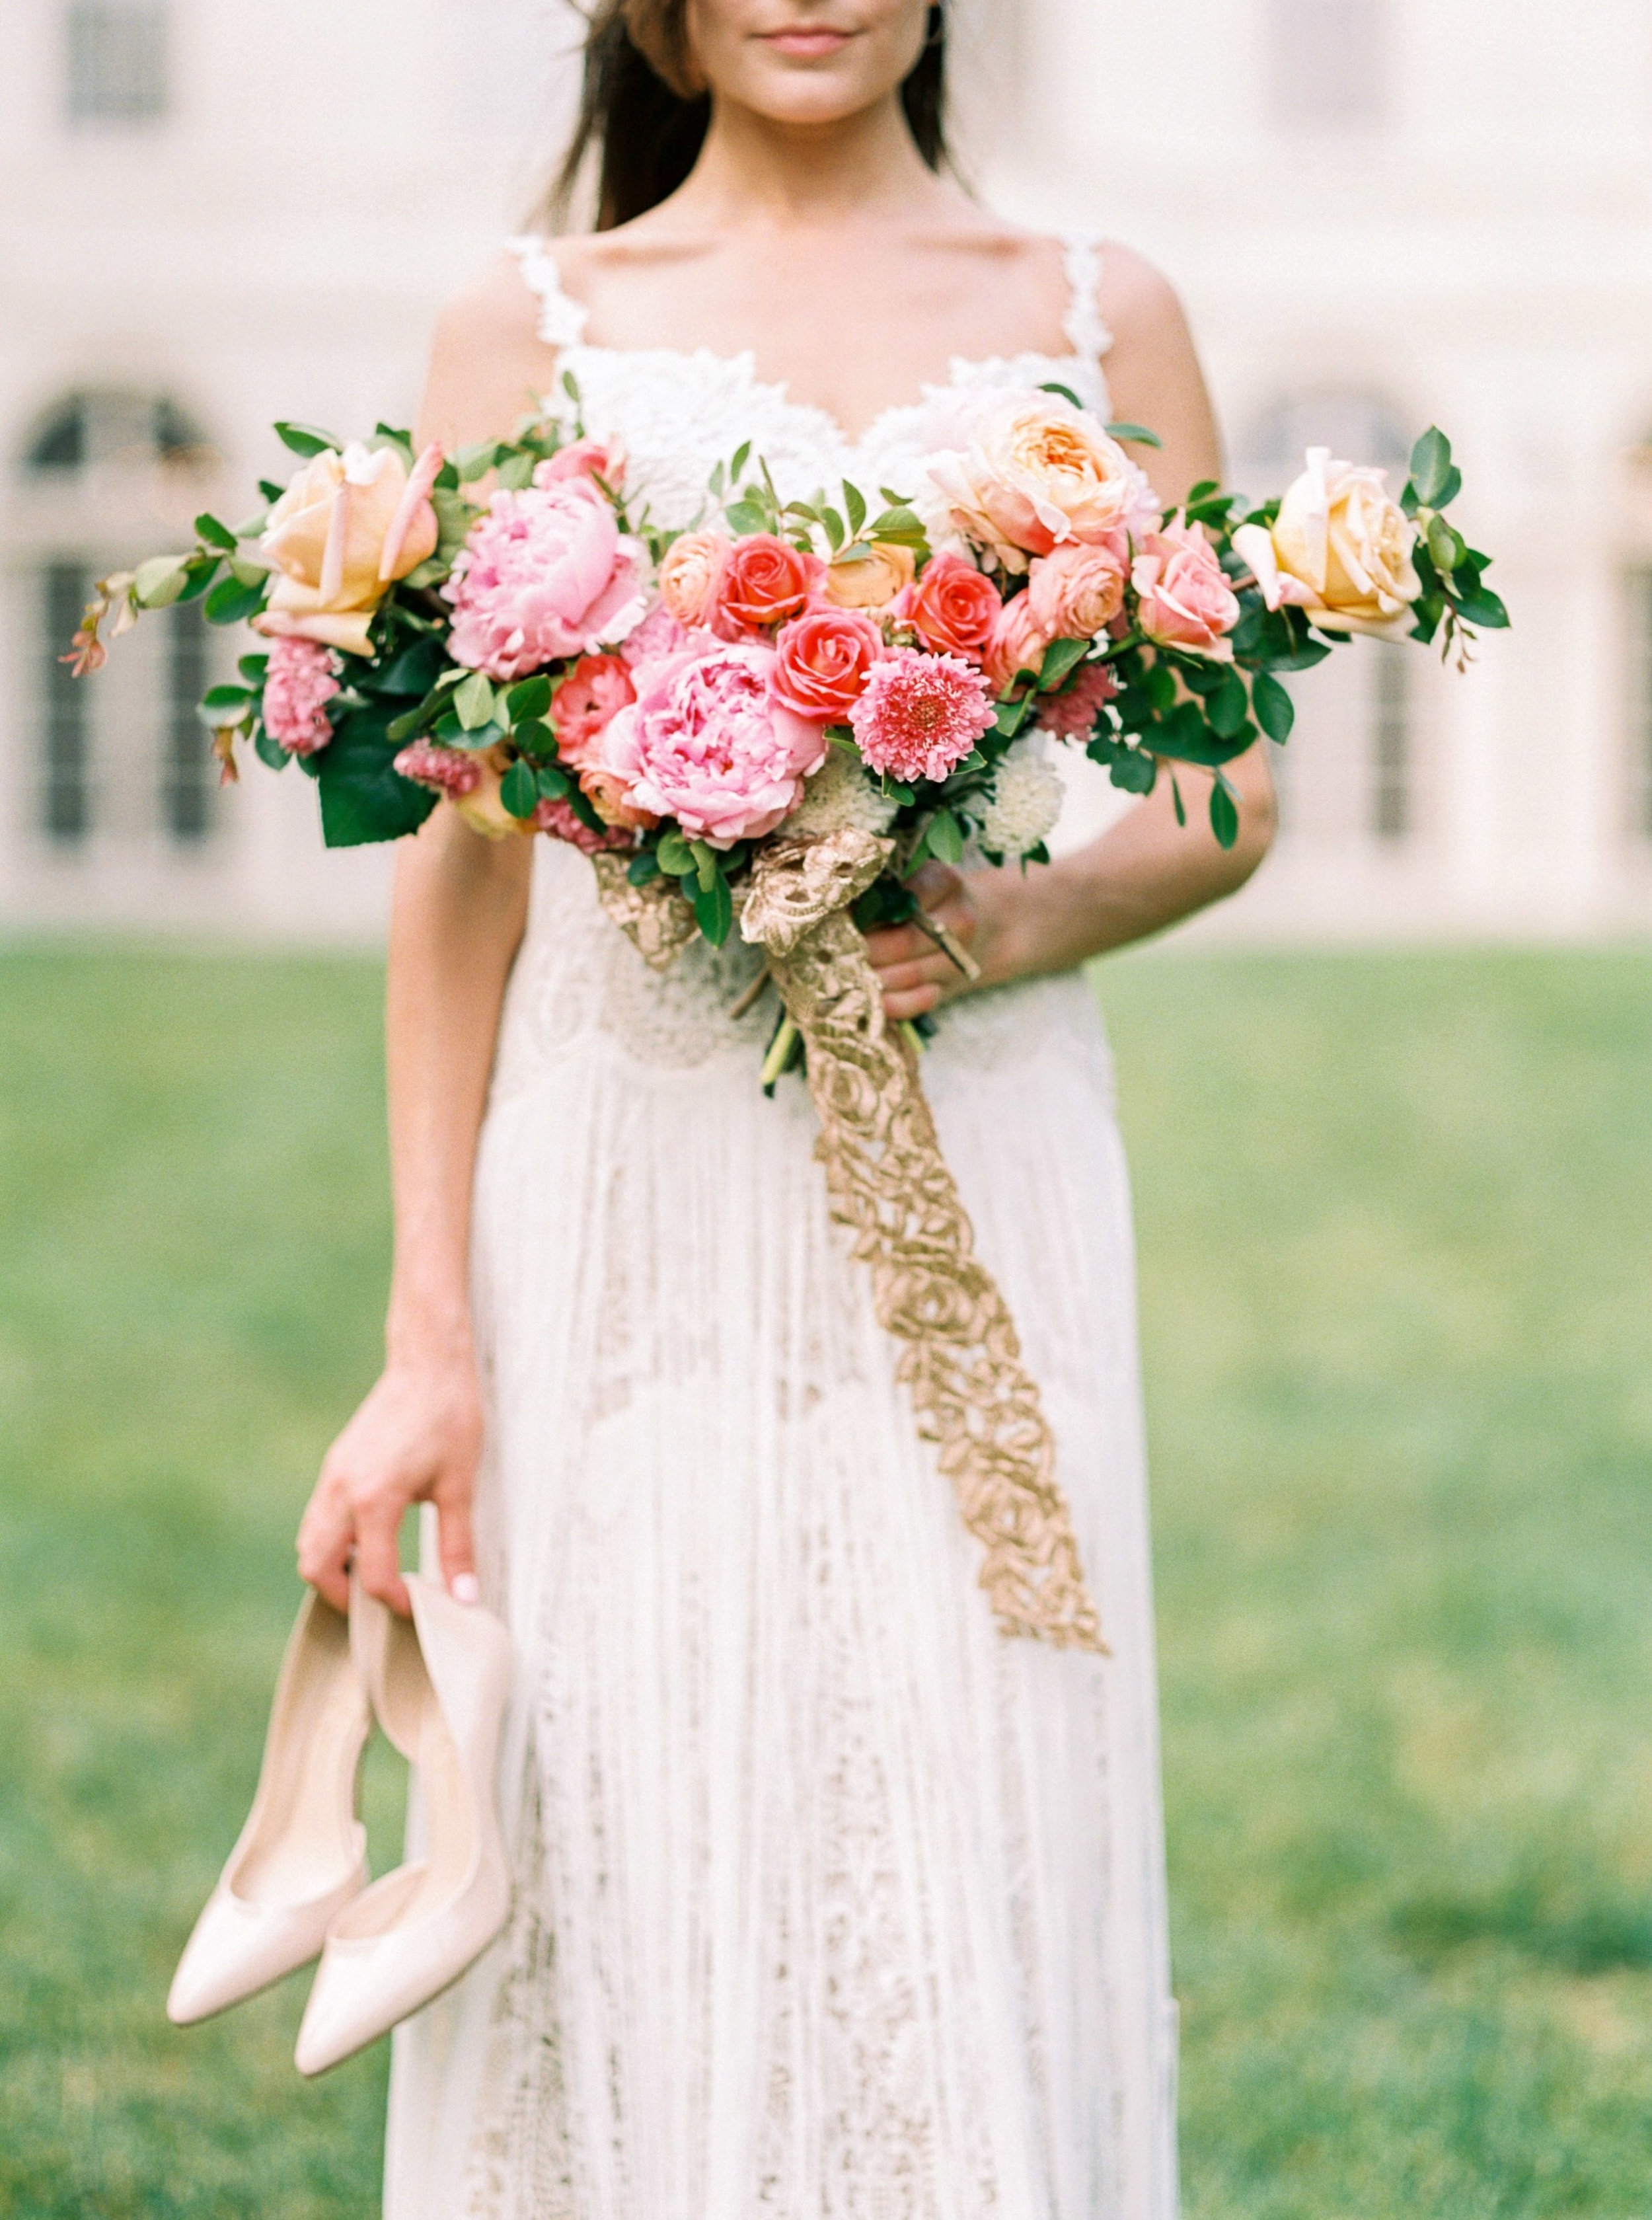 Nine Five Photography-Styled Shoots Across America-Wadsworth Mansion (17 of 29).jpg